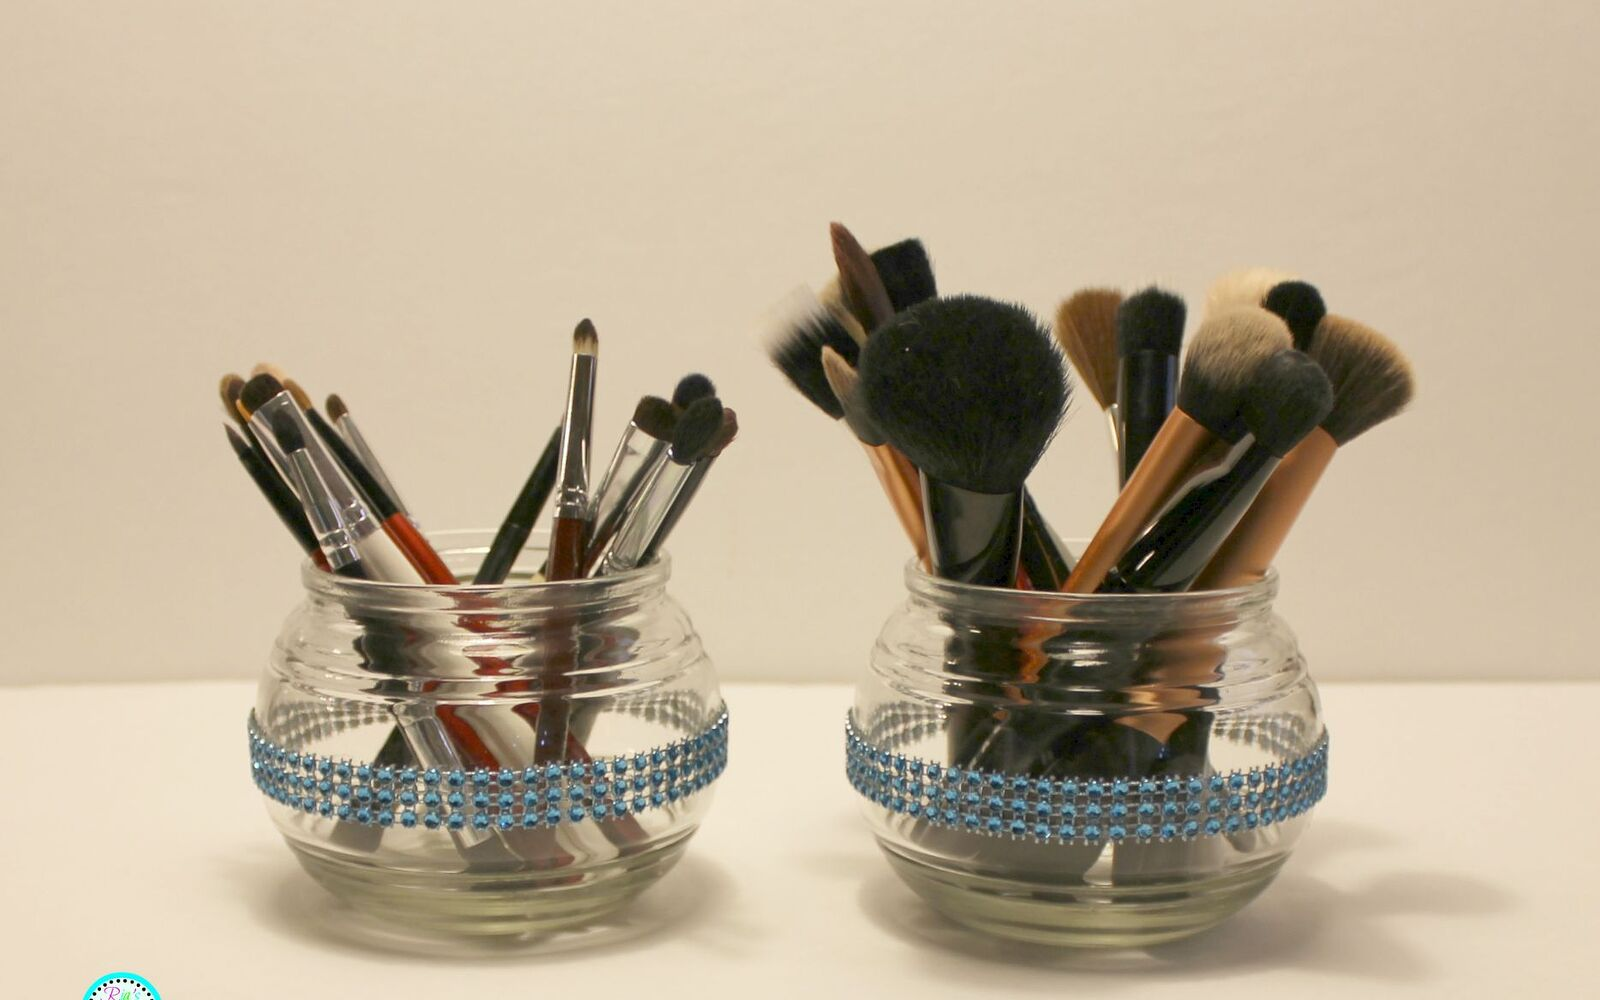 s 32 space saving storage ideas that ll keep your home organized, Use apothecary jars for makeup brushes